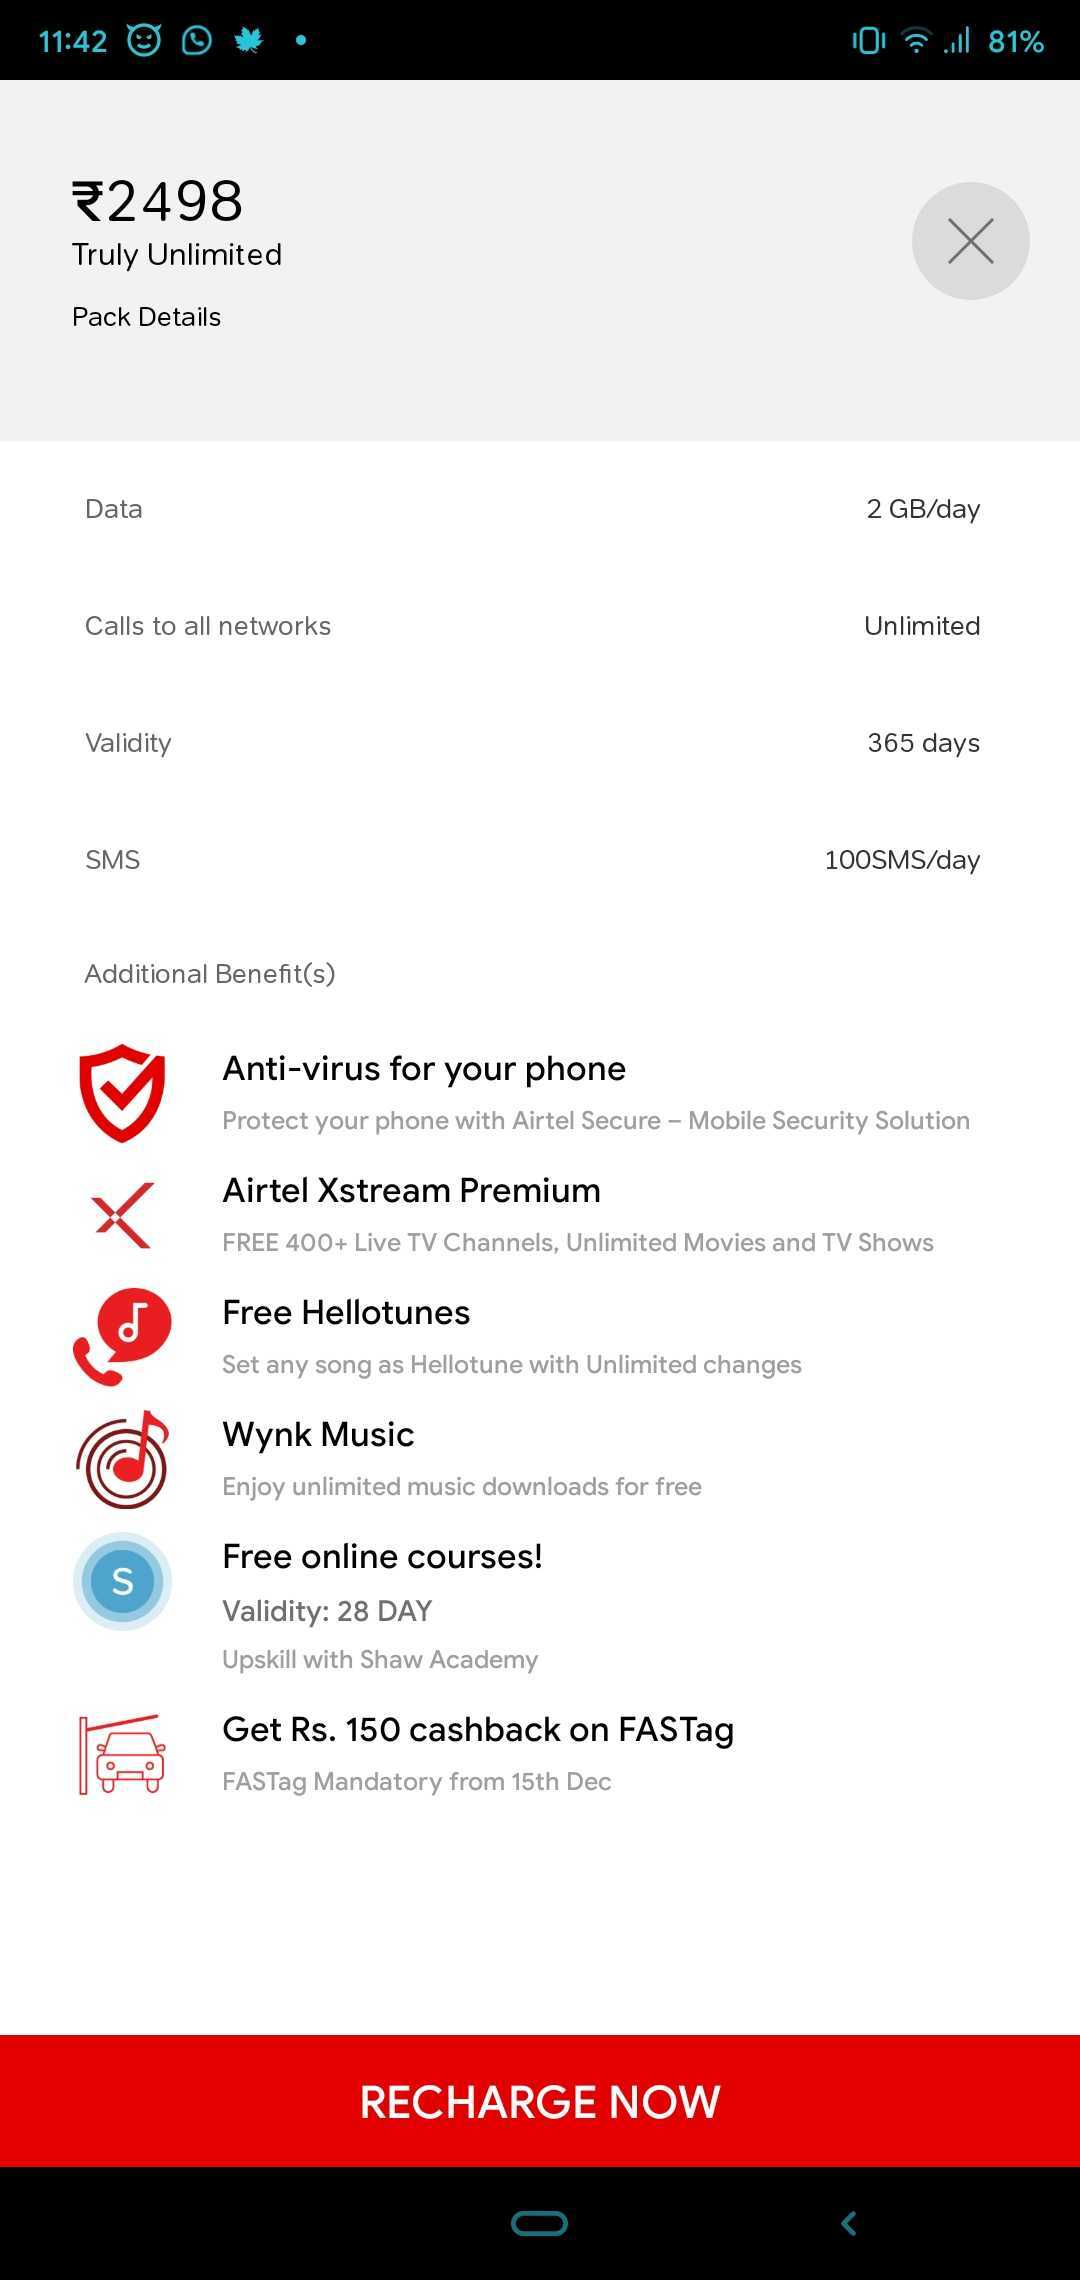 The new Airtel Rs 2,498 'Truly Unlimited' annual plan offers unlimited Local, STD & Roaming calls on any network within India